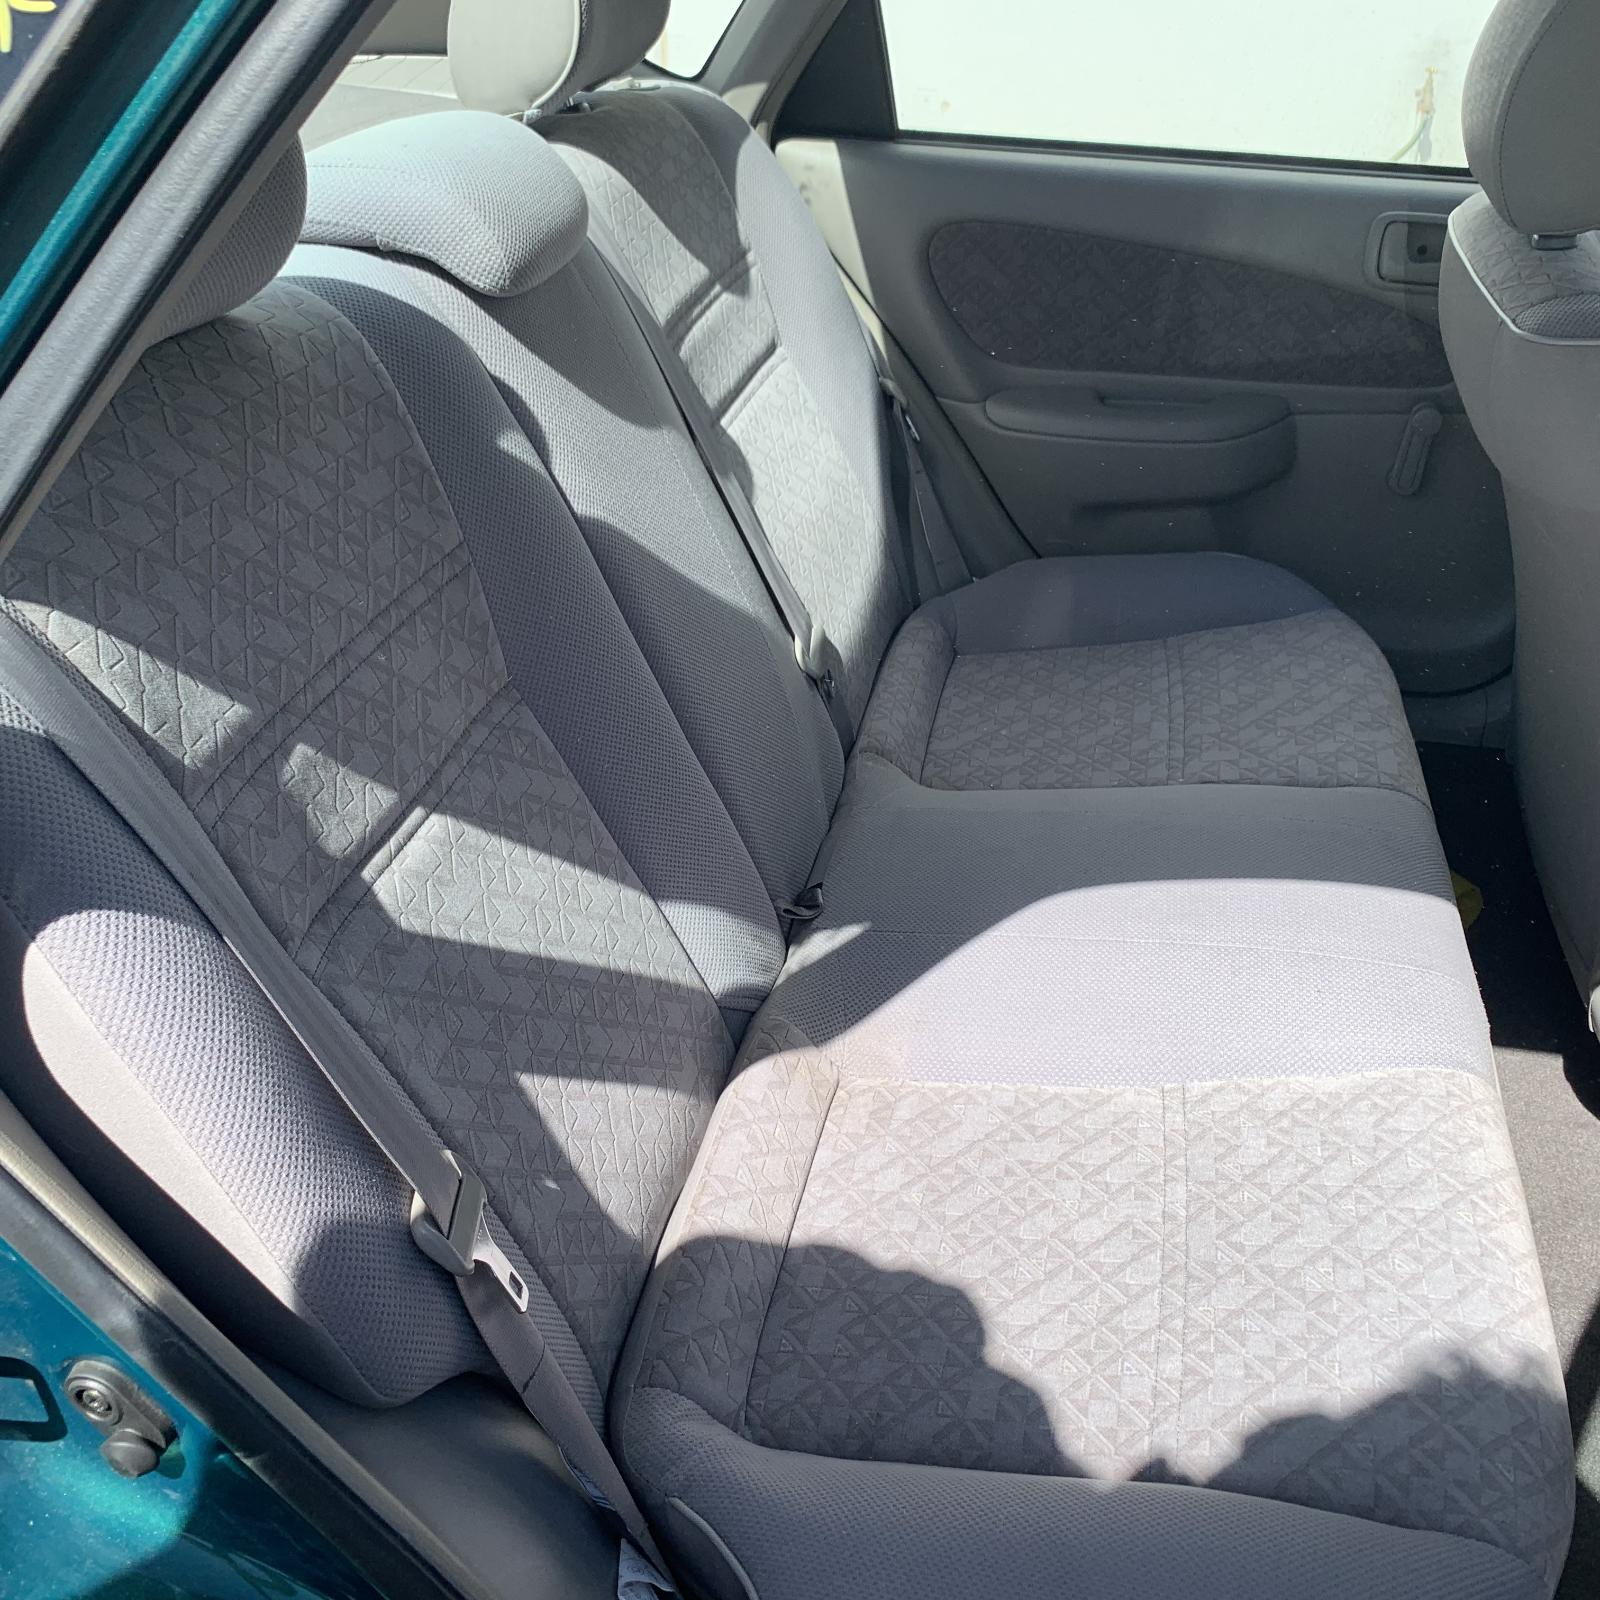 TOYOTA COROLLA, 2nd Seat (Rear Seat), AE112, 5DR, 10/98-11/01